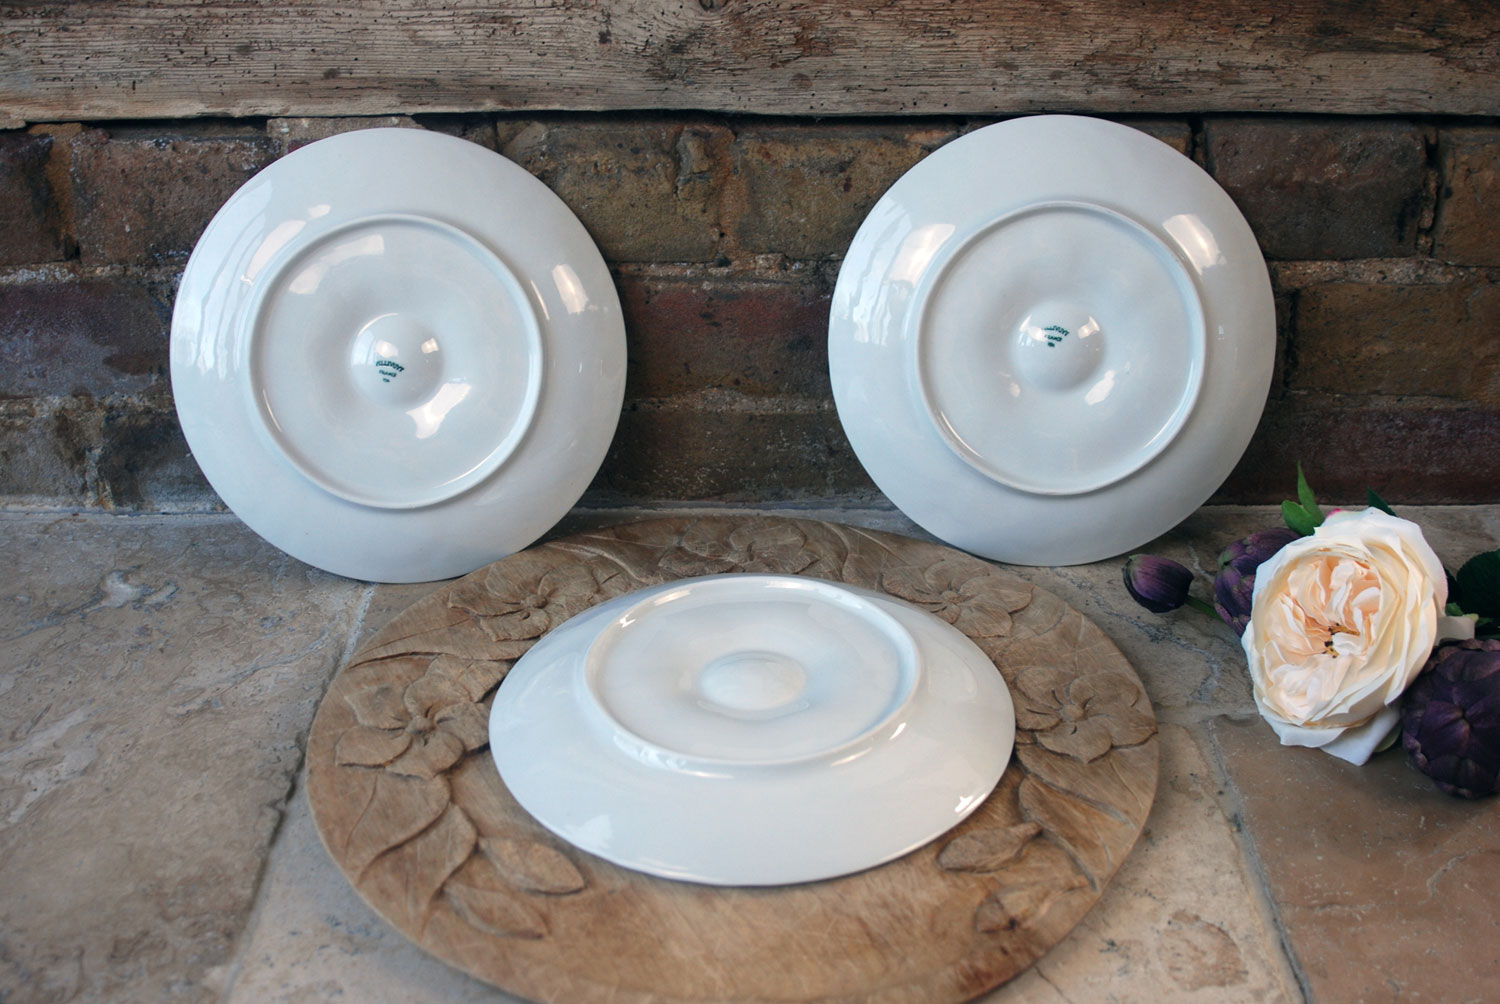 antique white ironstone french le pillyvut whiteware plain ceramic oyster plates